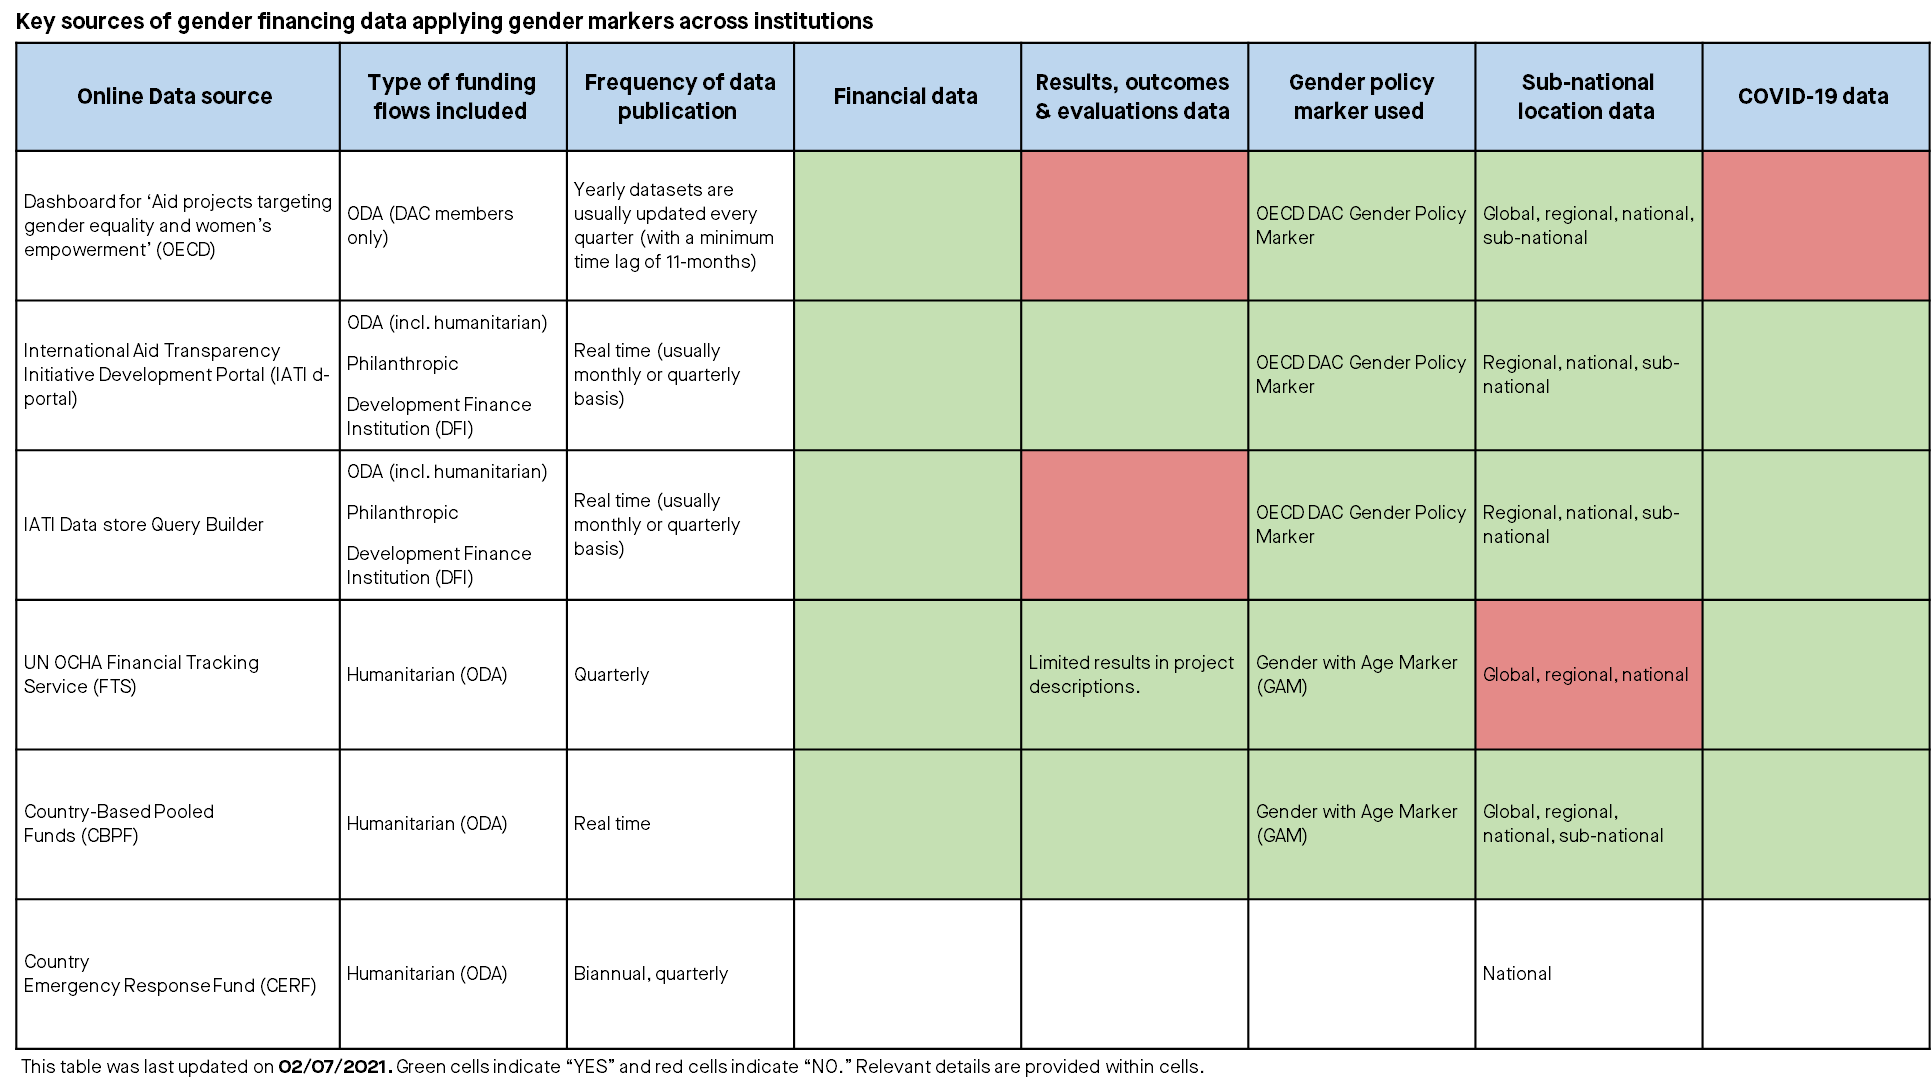 Table showing key sources of gender financing data applying gender markers across institutions